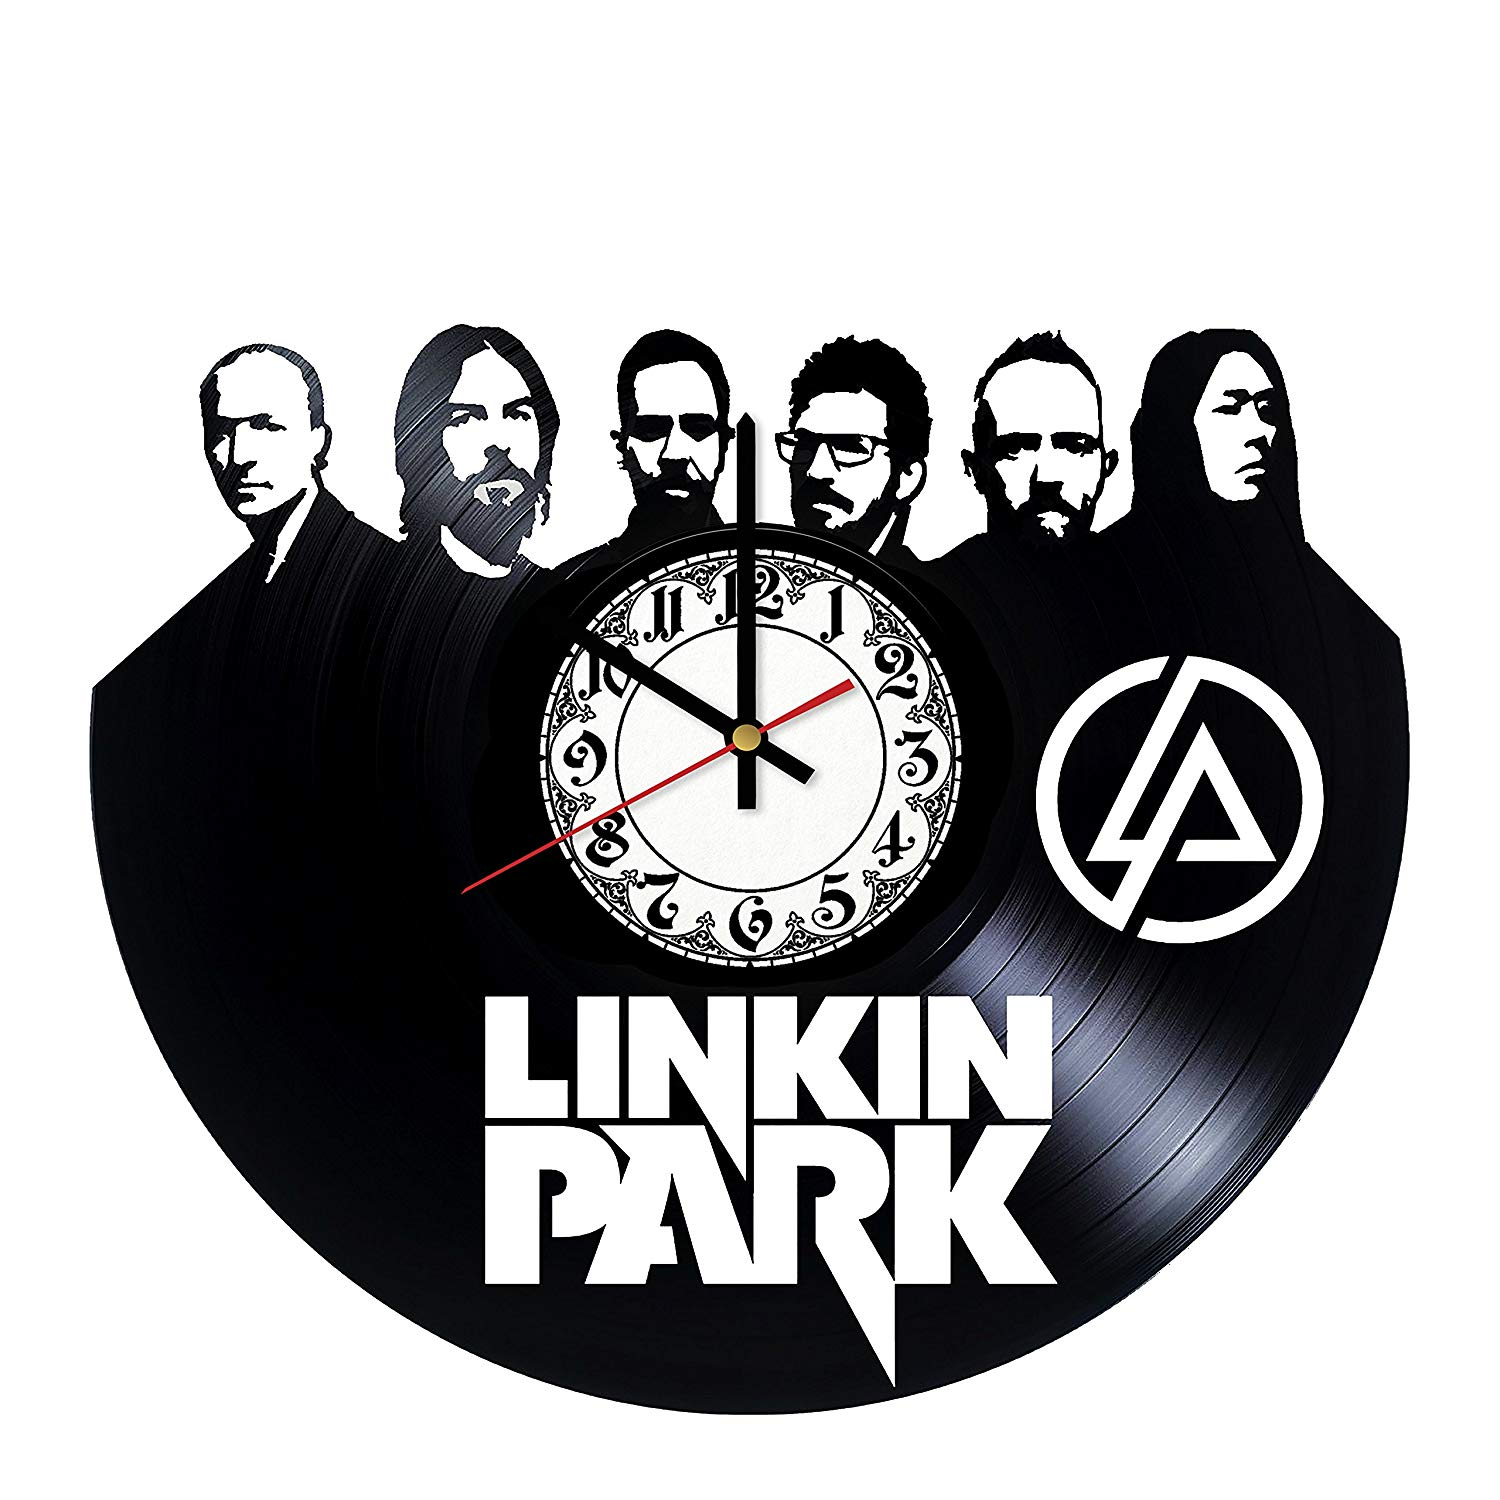 Amazon.com: Linkin Park Rock Band Design HANDMADE Vinyl.